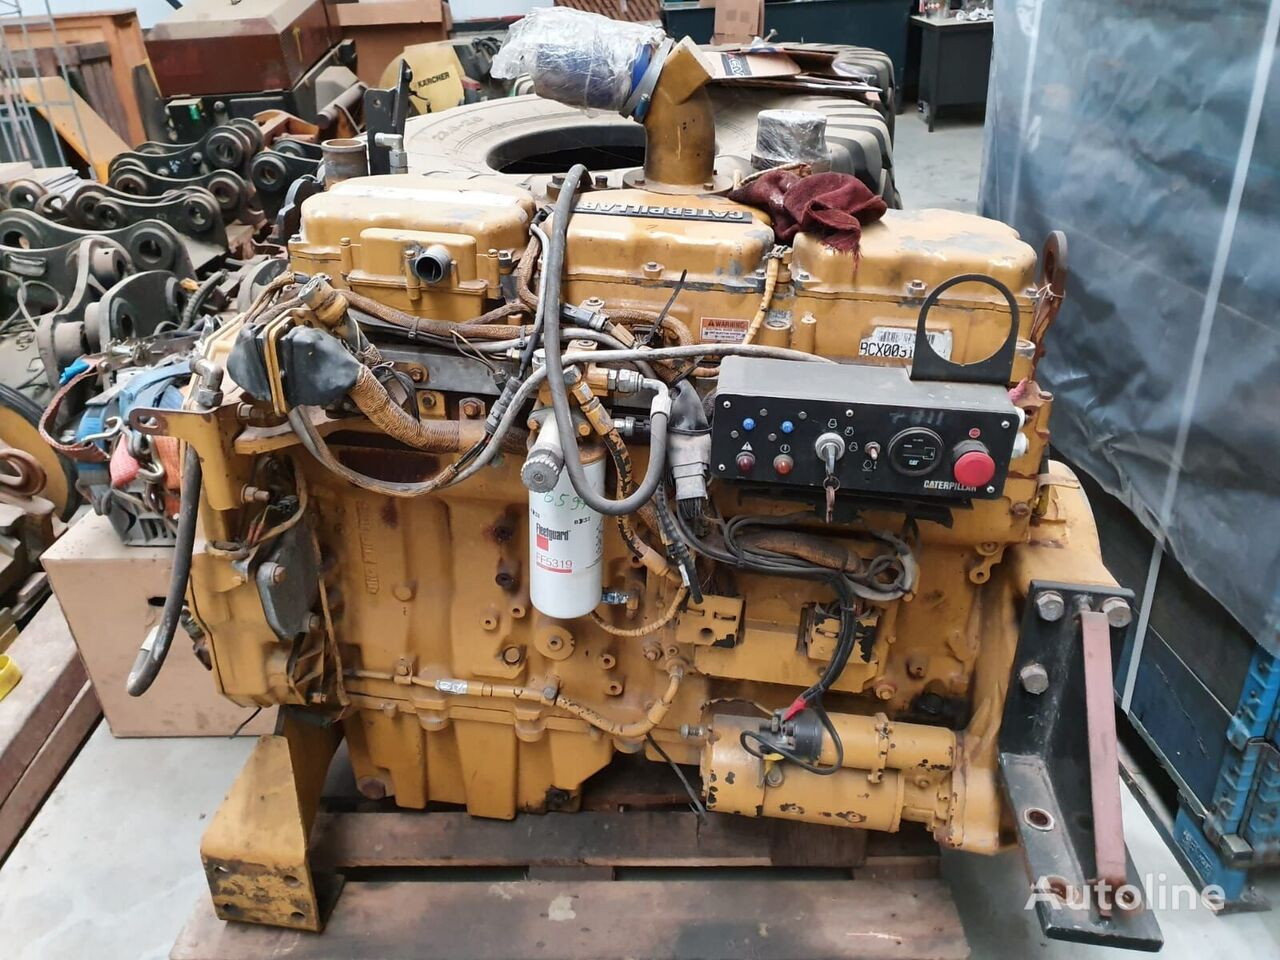 CATERPILLAR C10 engine for other construction machinery